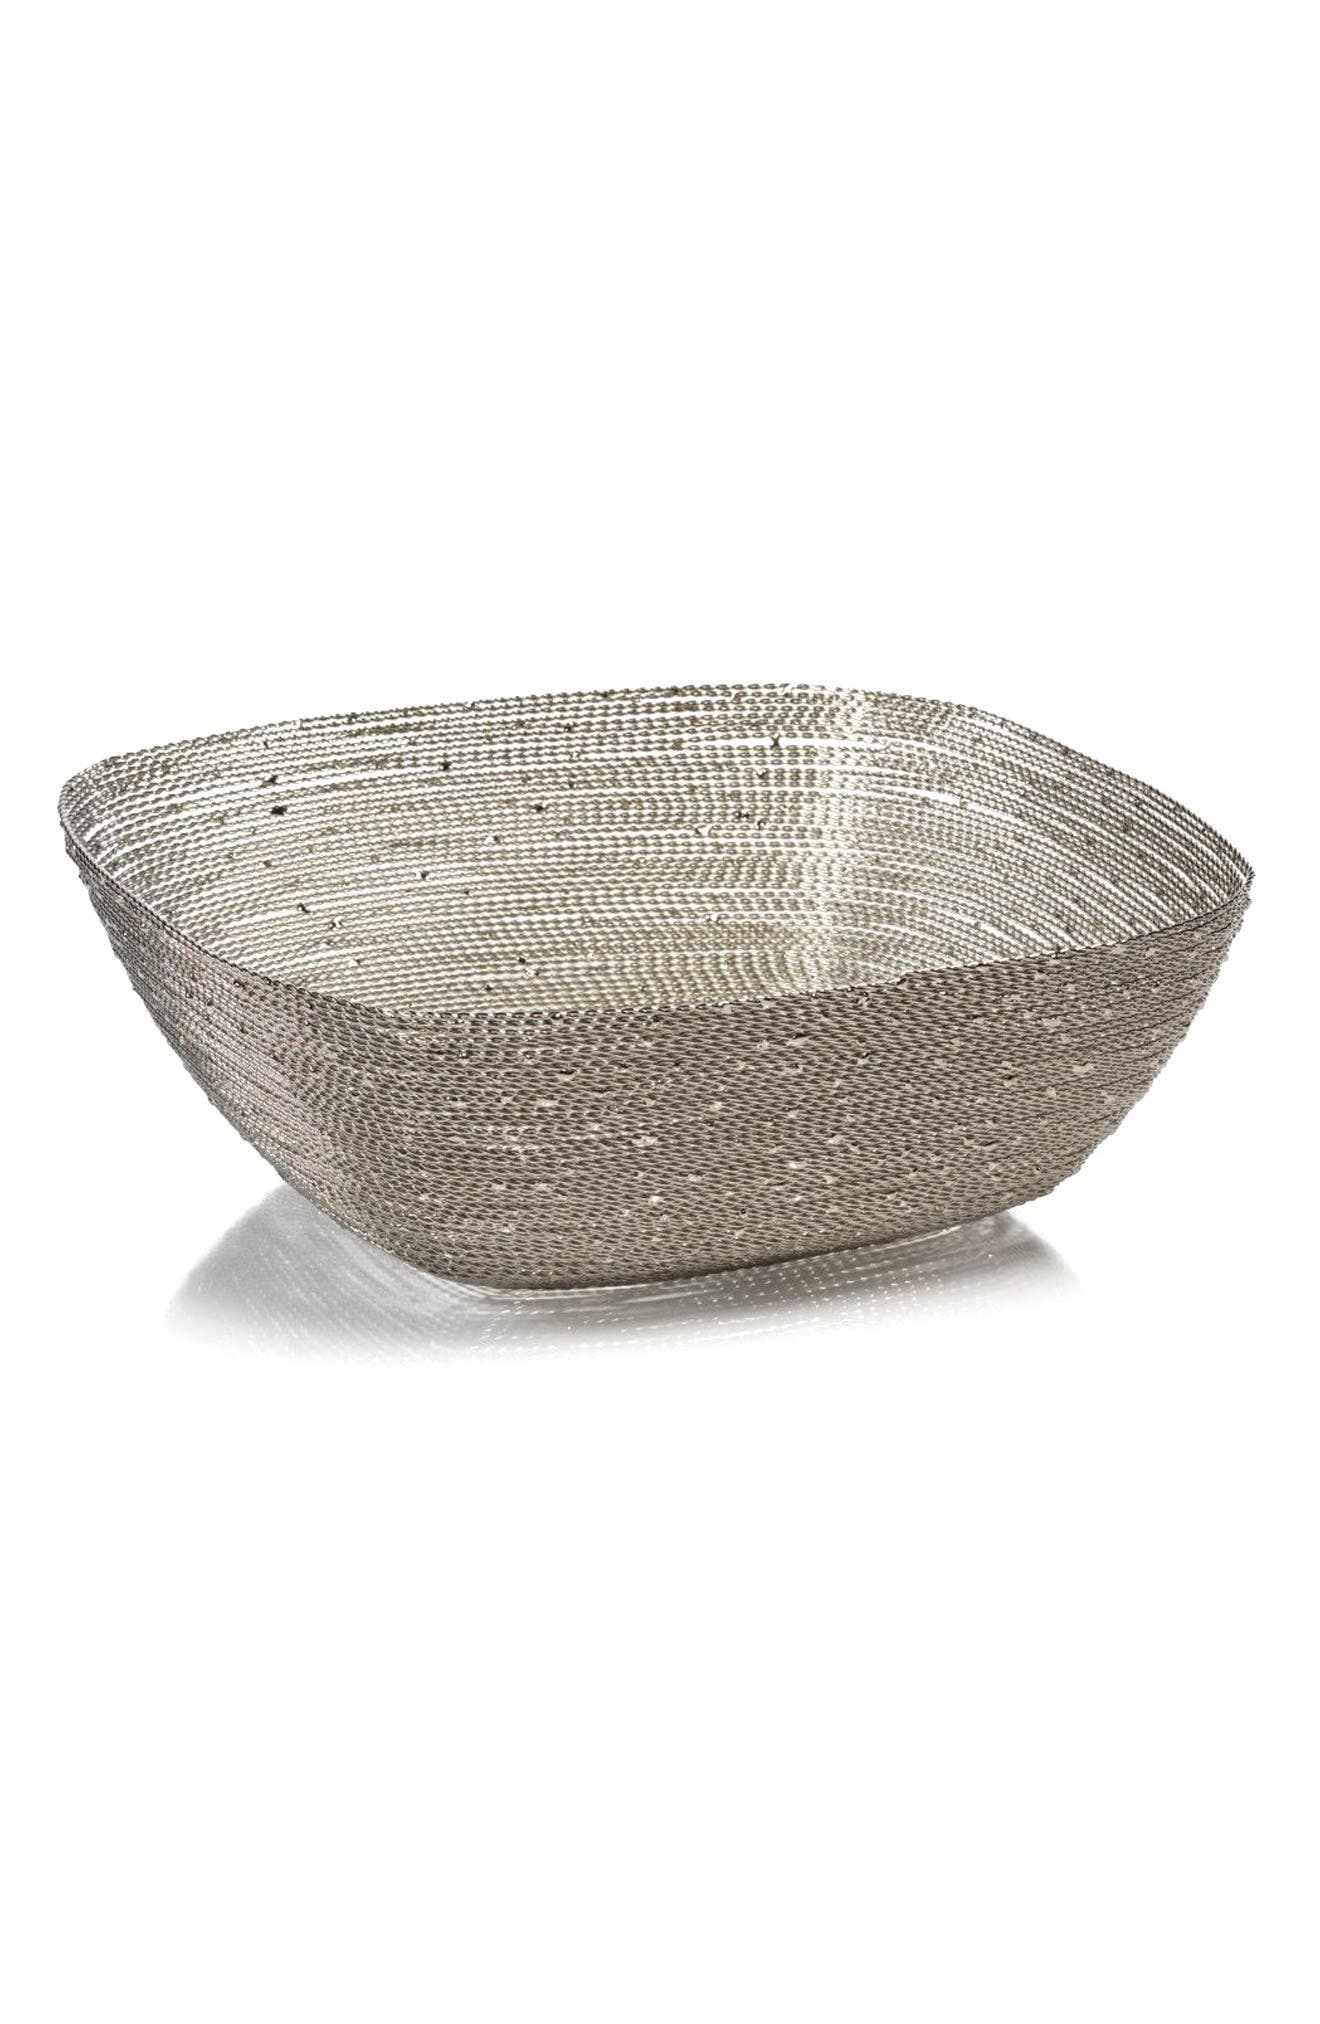 Zulu Large Square Woven Wire Basket,                             Main thumbnail 1, color,                             040